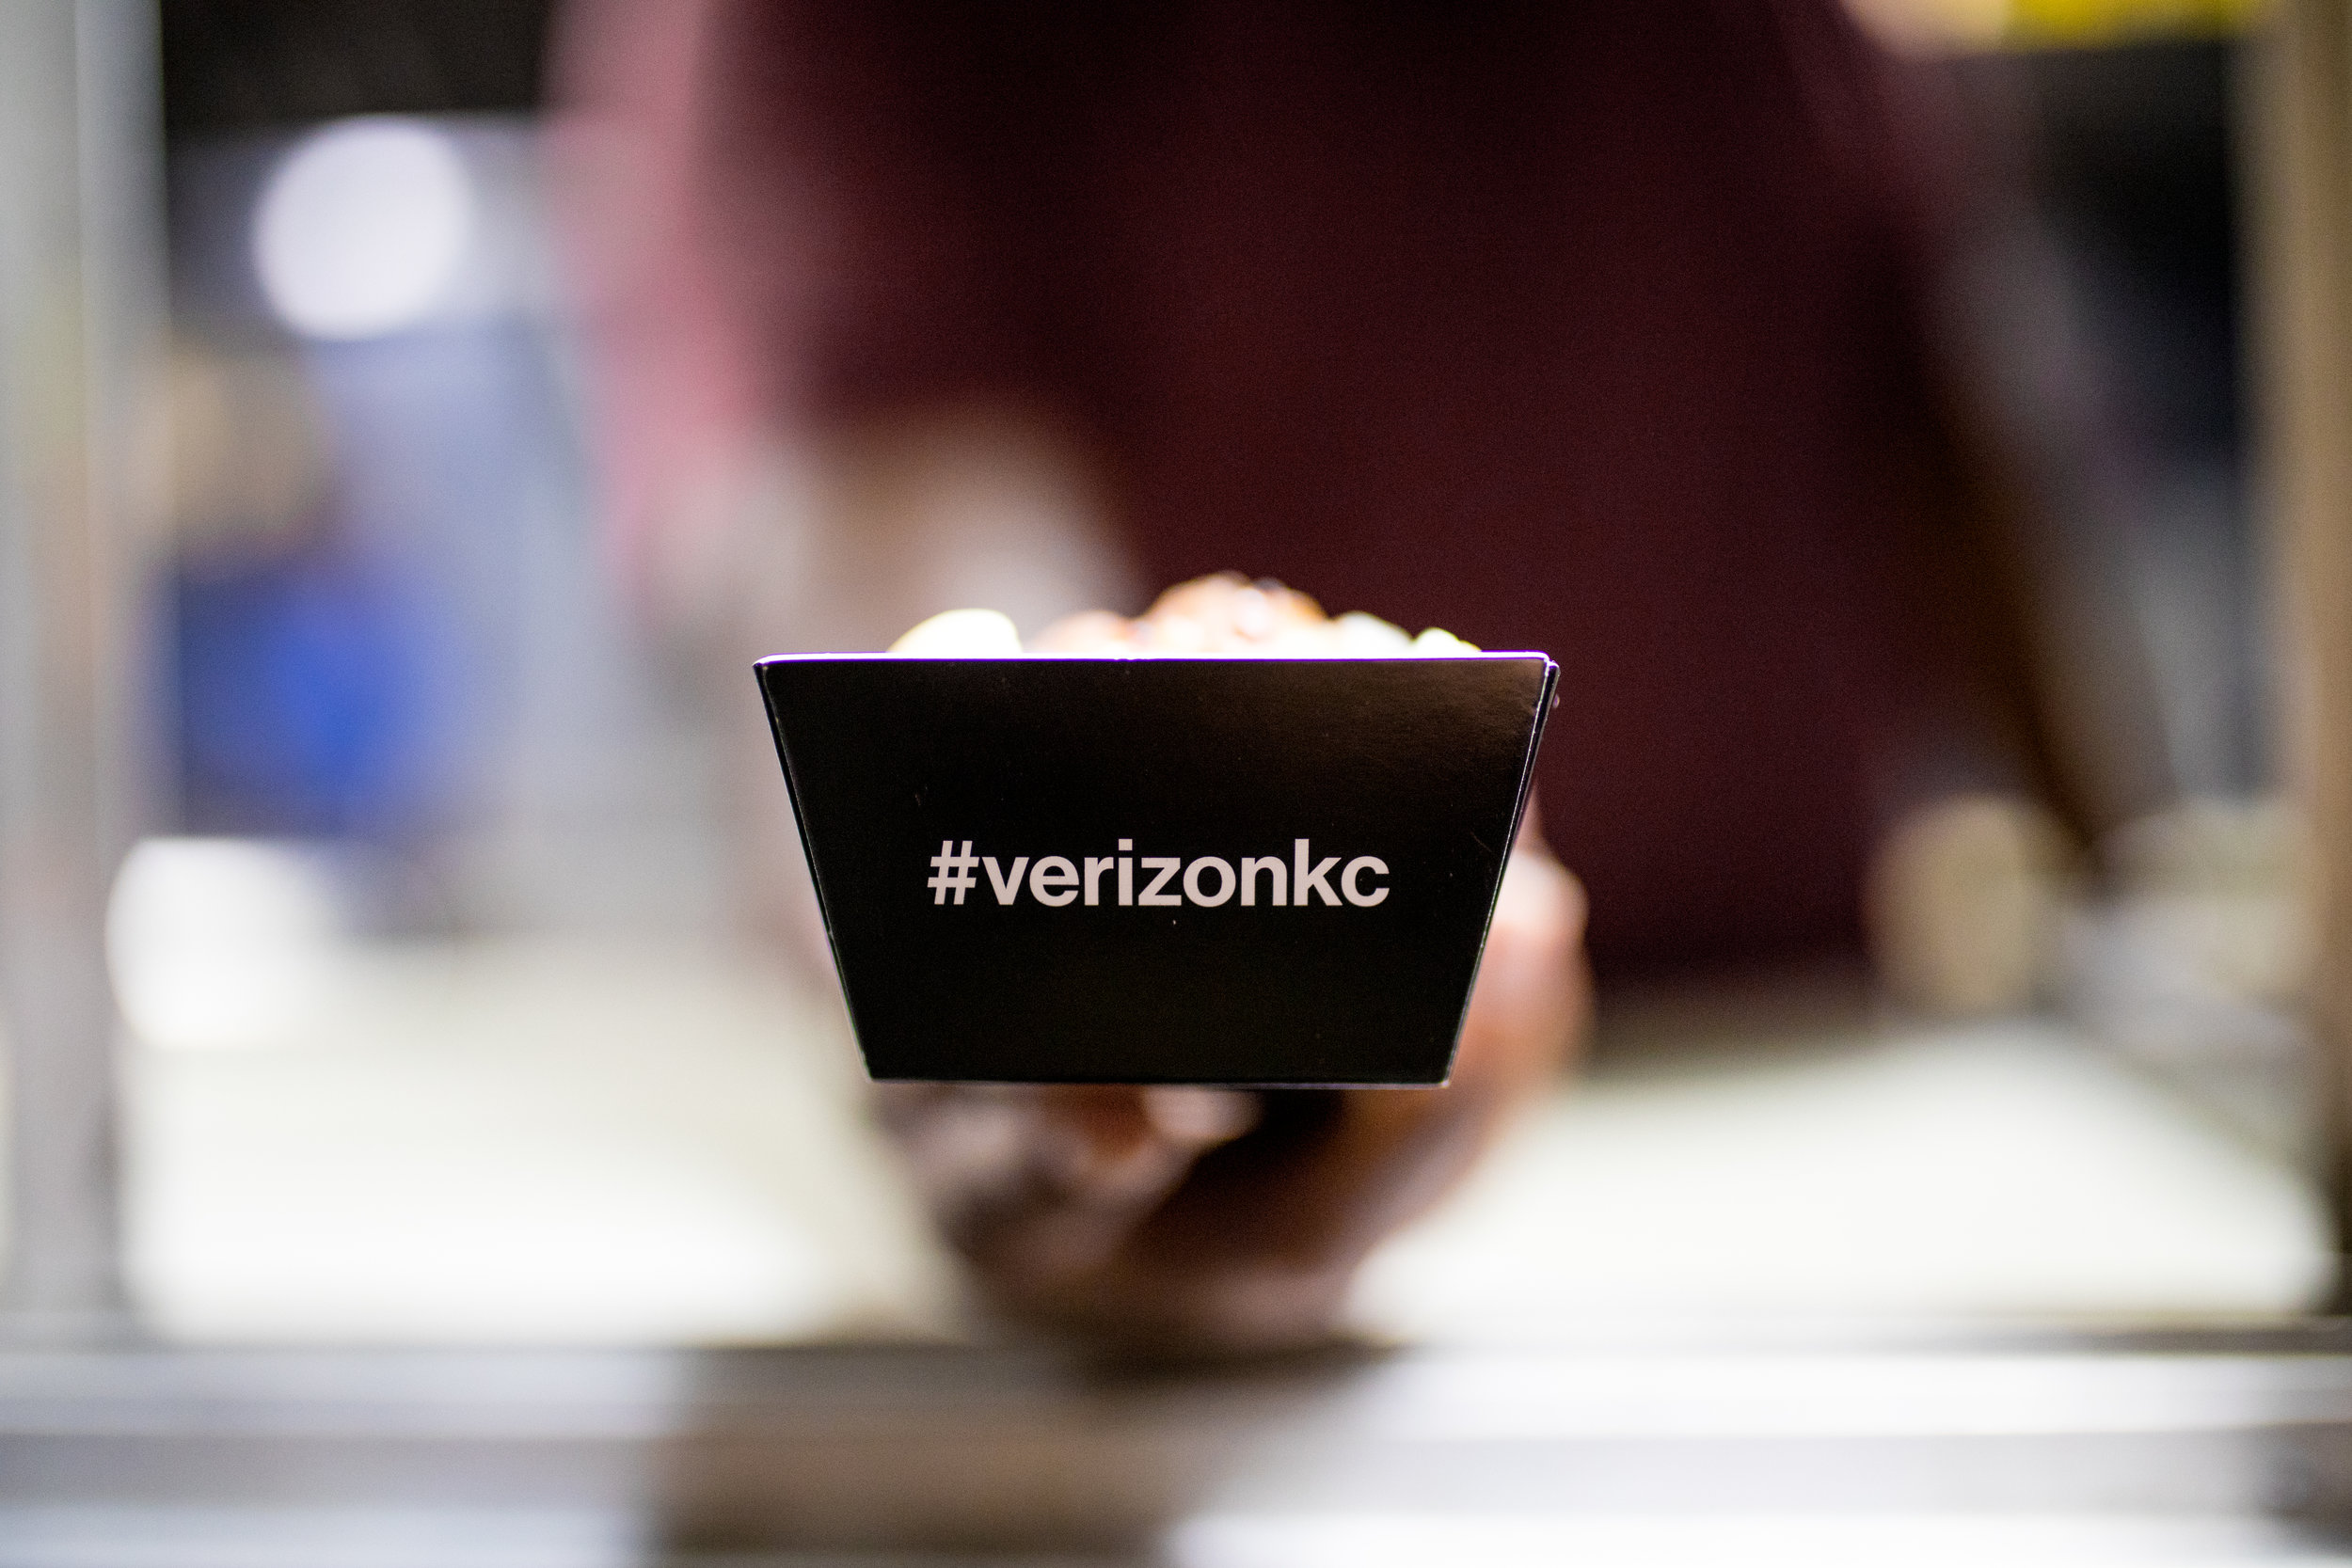 #verizonKC. See End of Post for Giveaway Details.